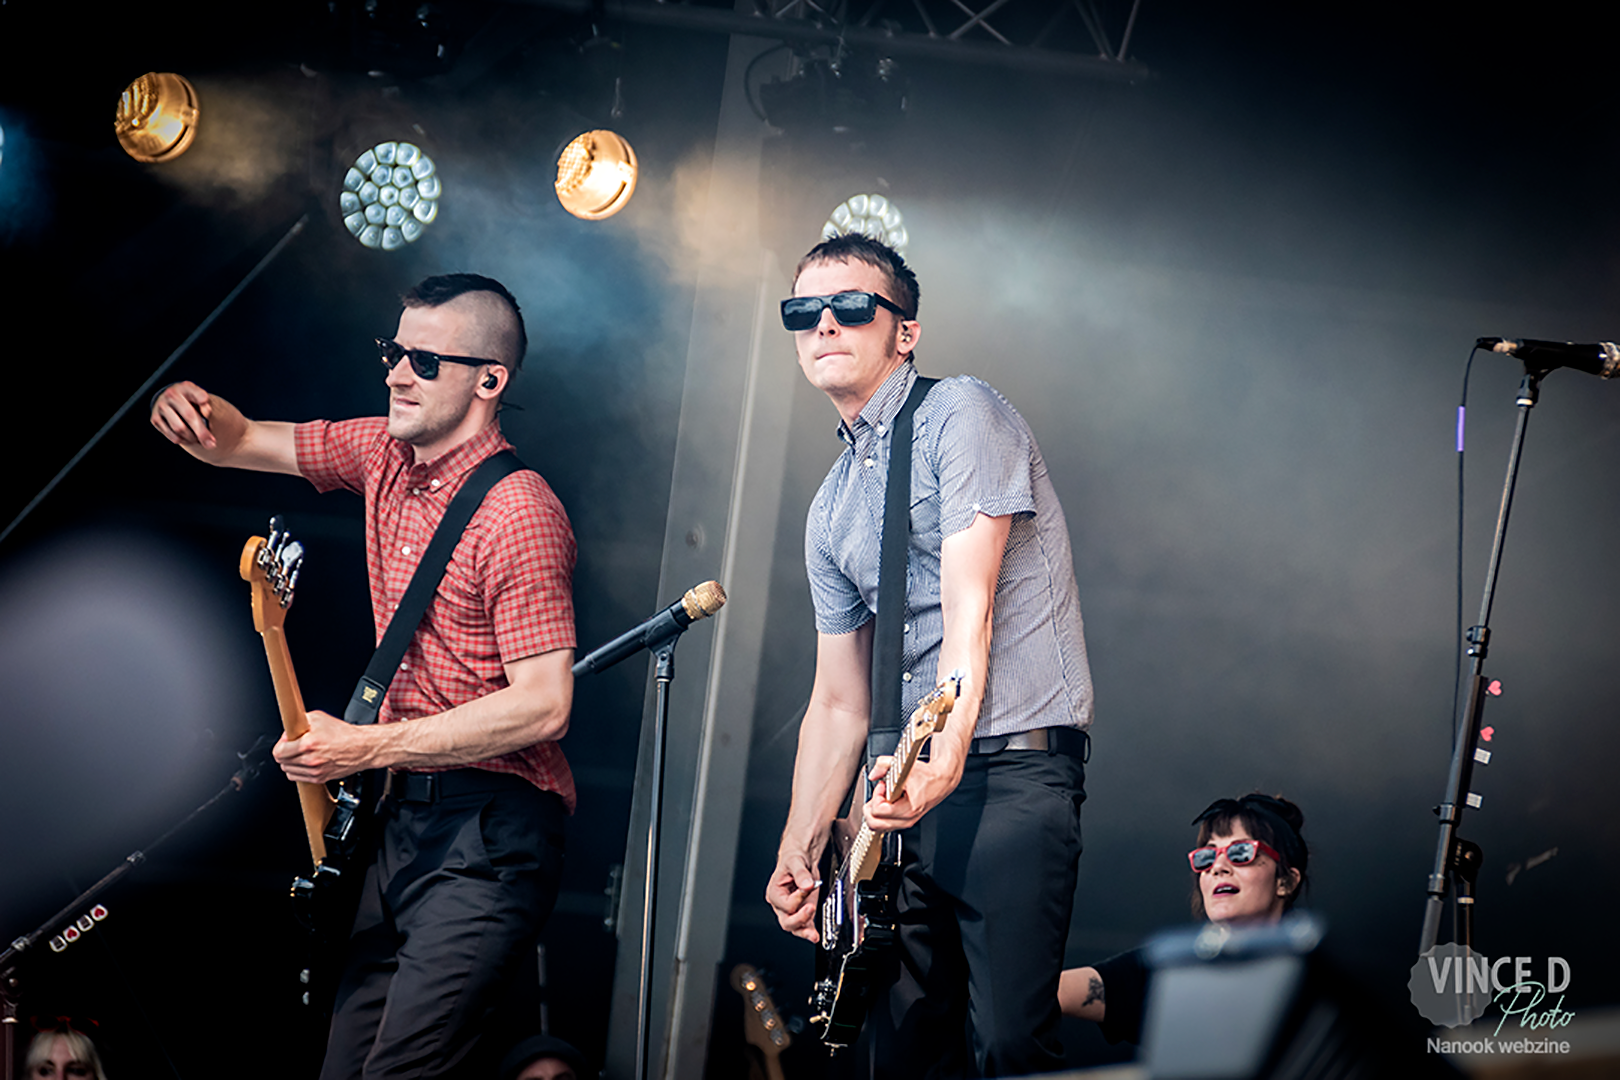 nanook-webzine-festival-photos-concerts-report-Driancourt_vincedphoto_Hellfest_THE-INTERRUPTERS_band